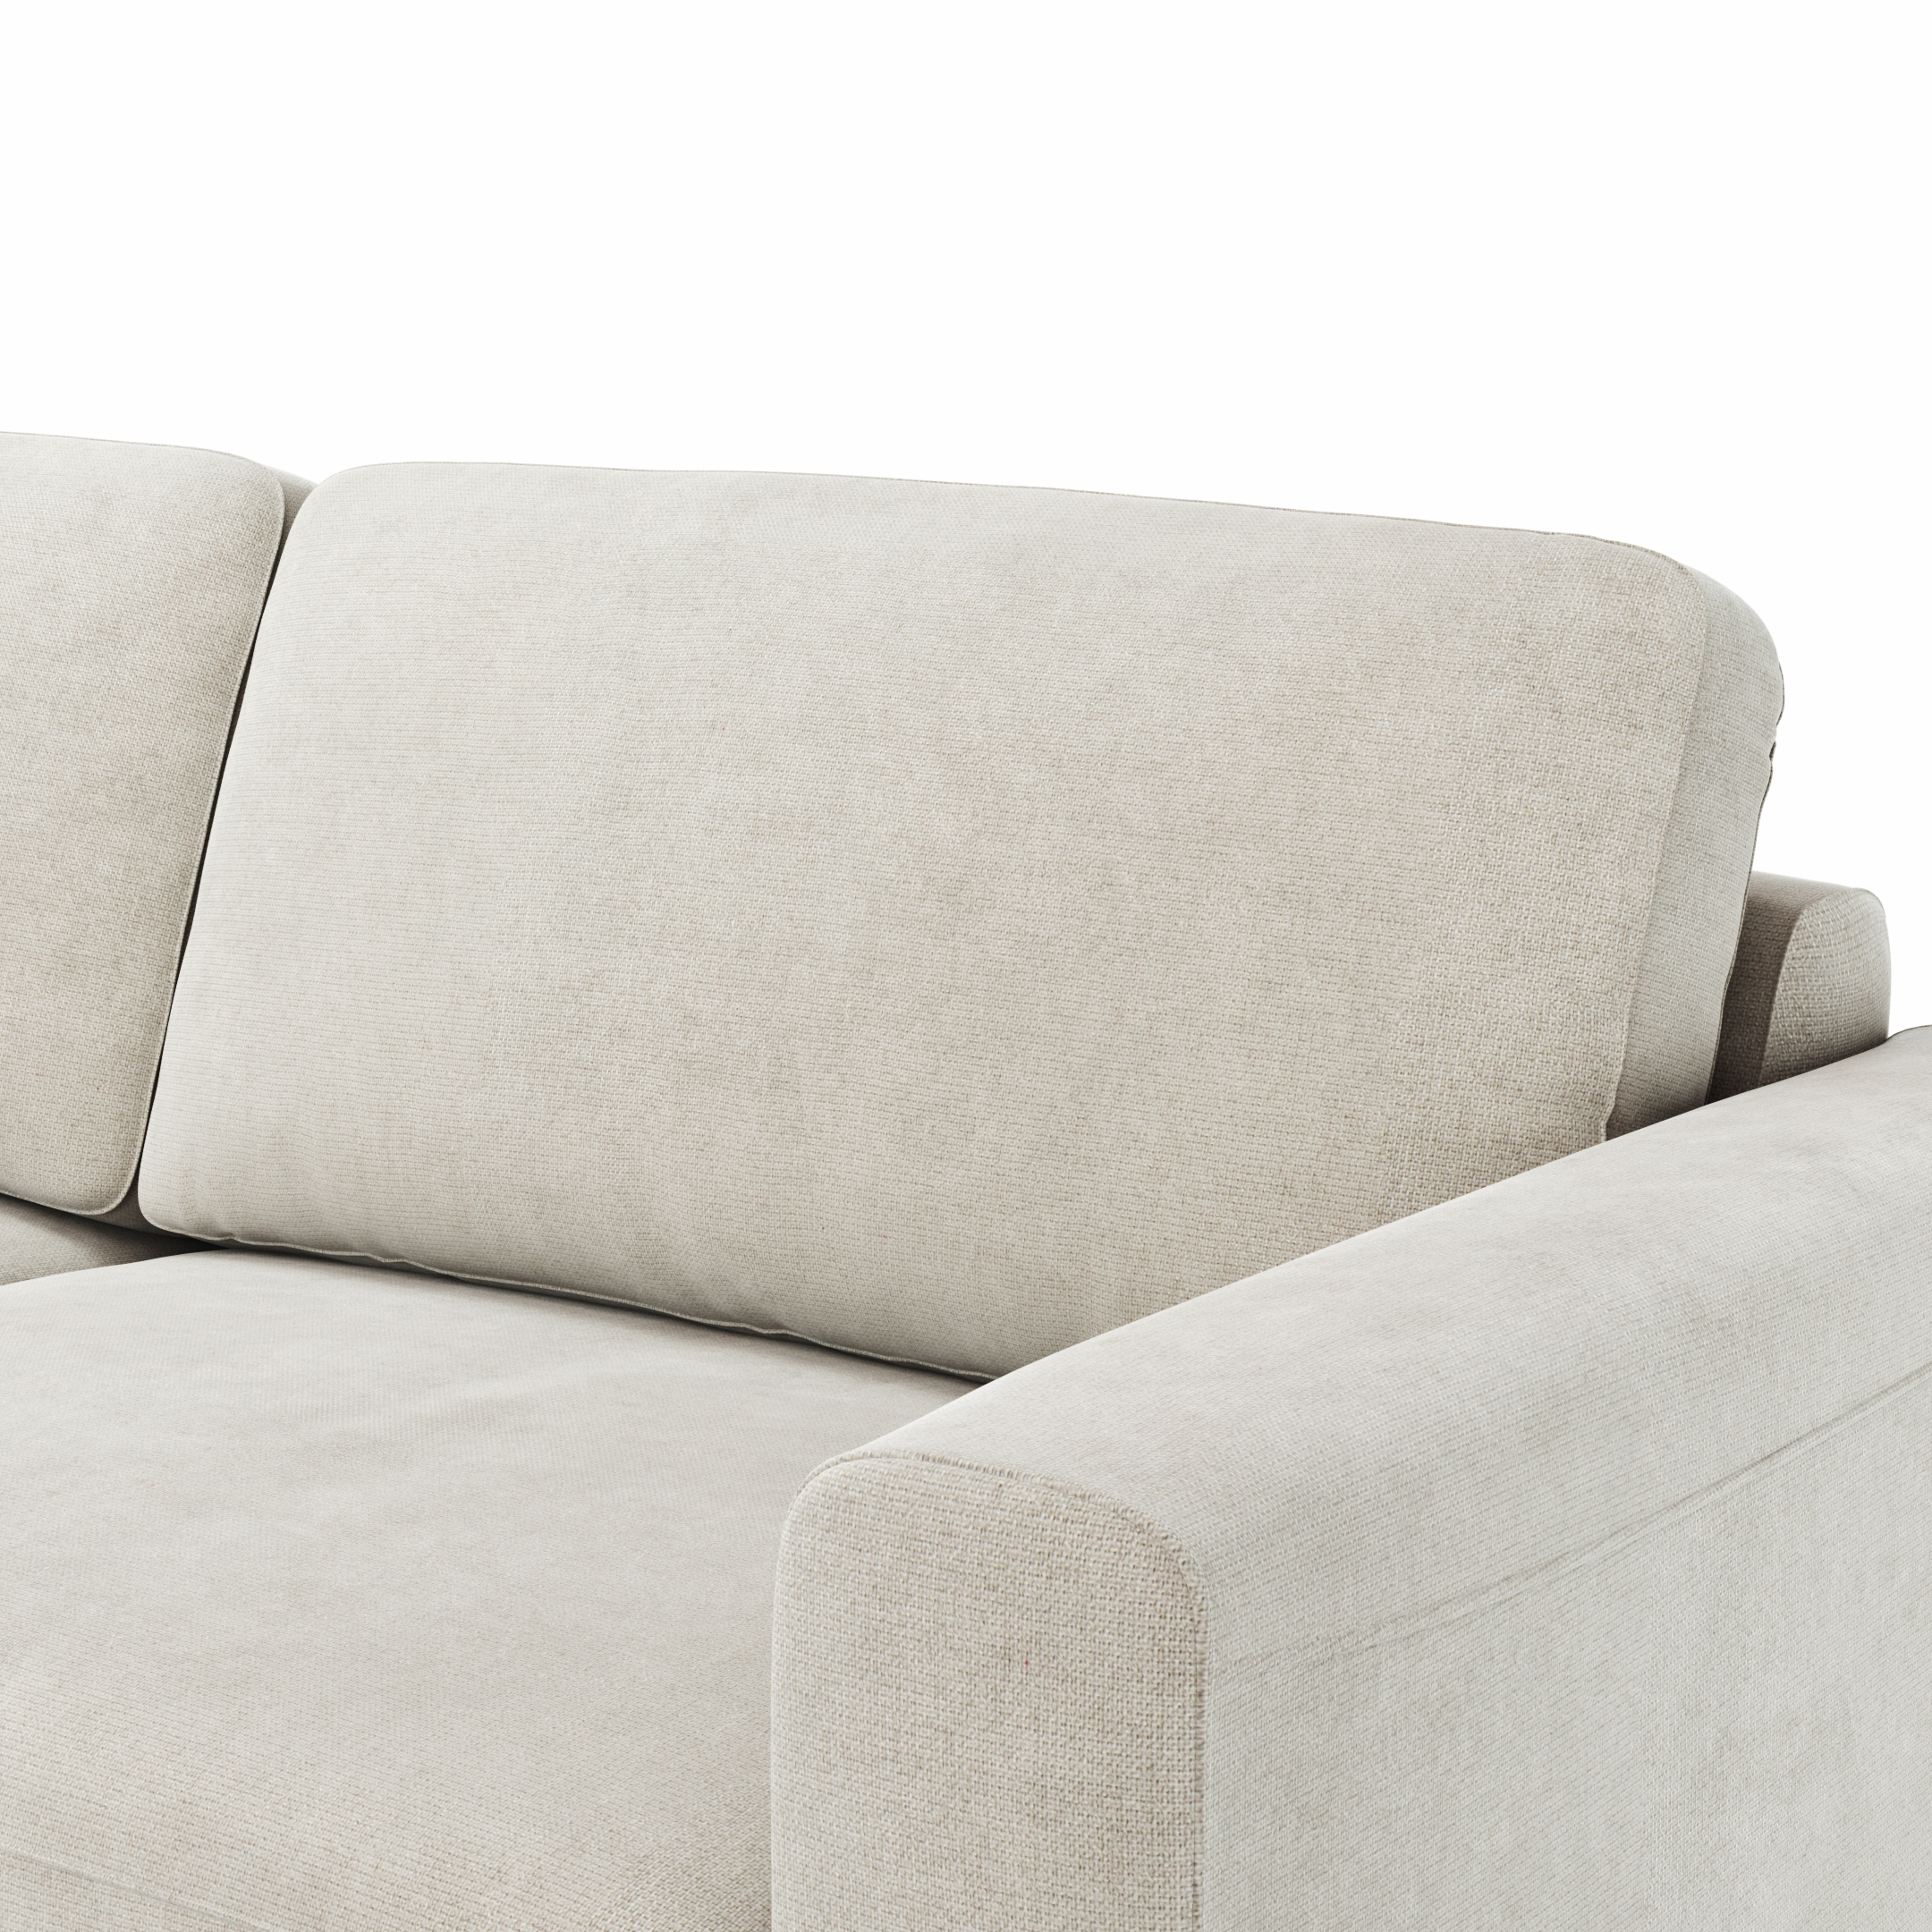 Global Family Ecksofa Oviedo detailbild 1 102376 | Homepoet